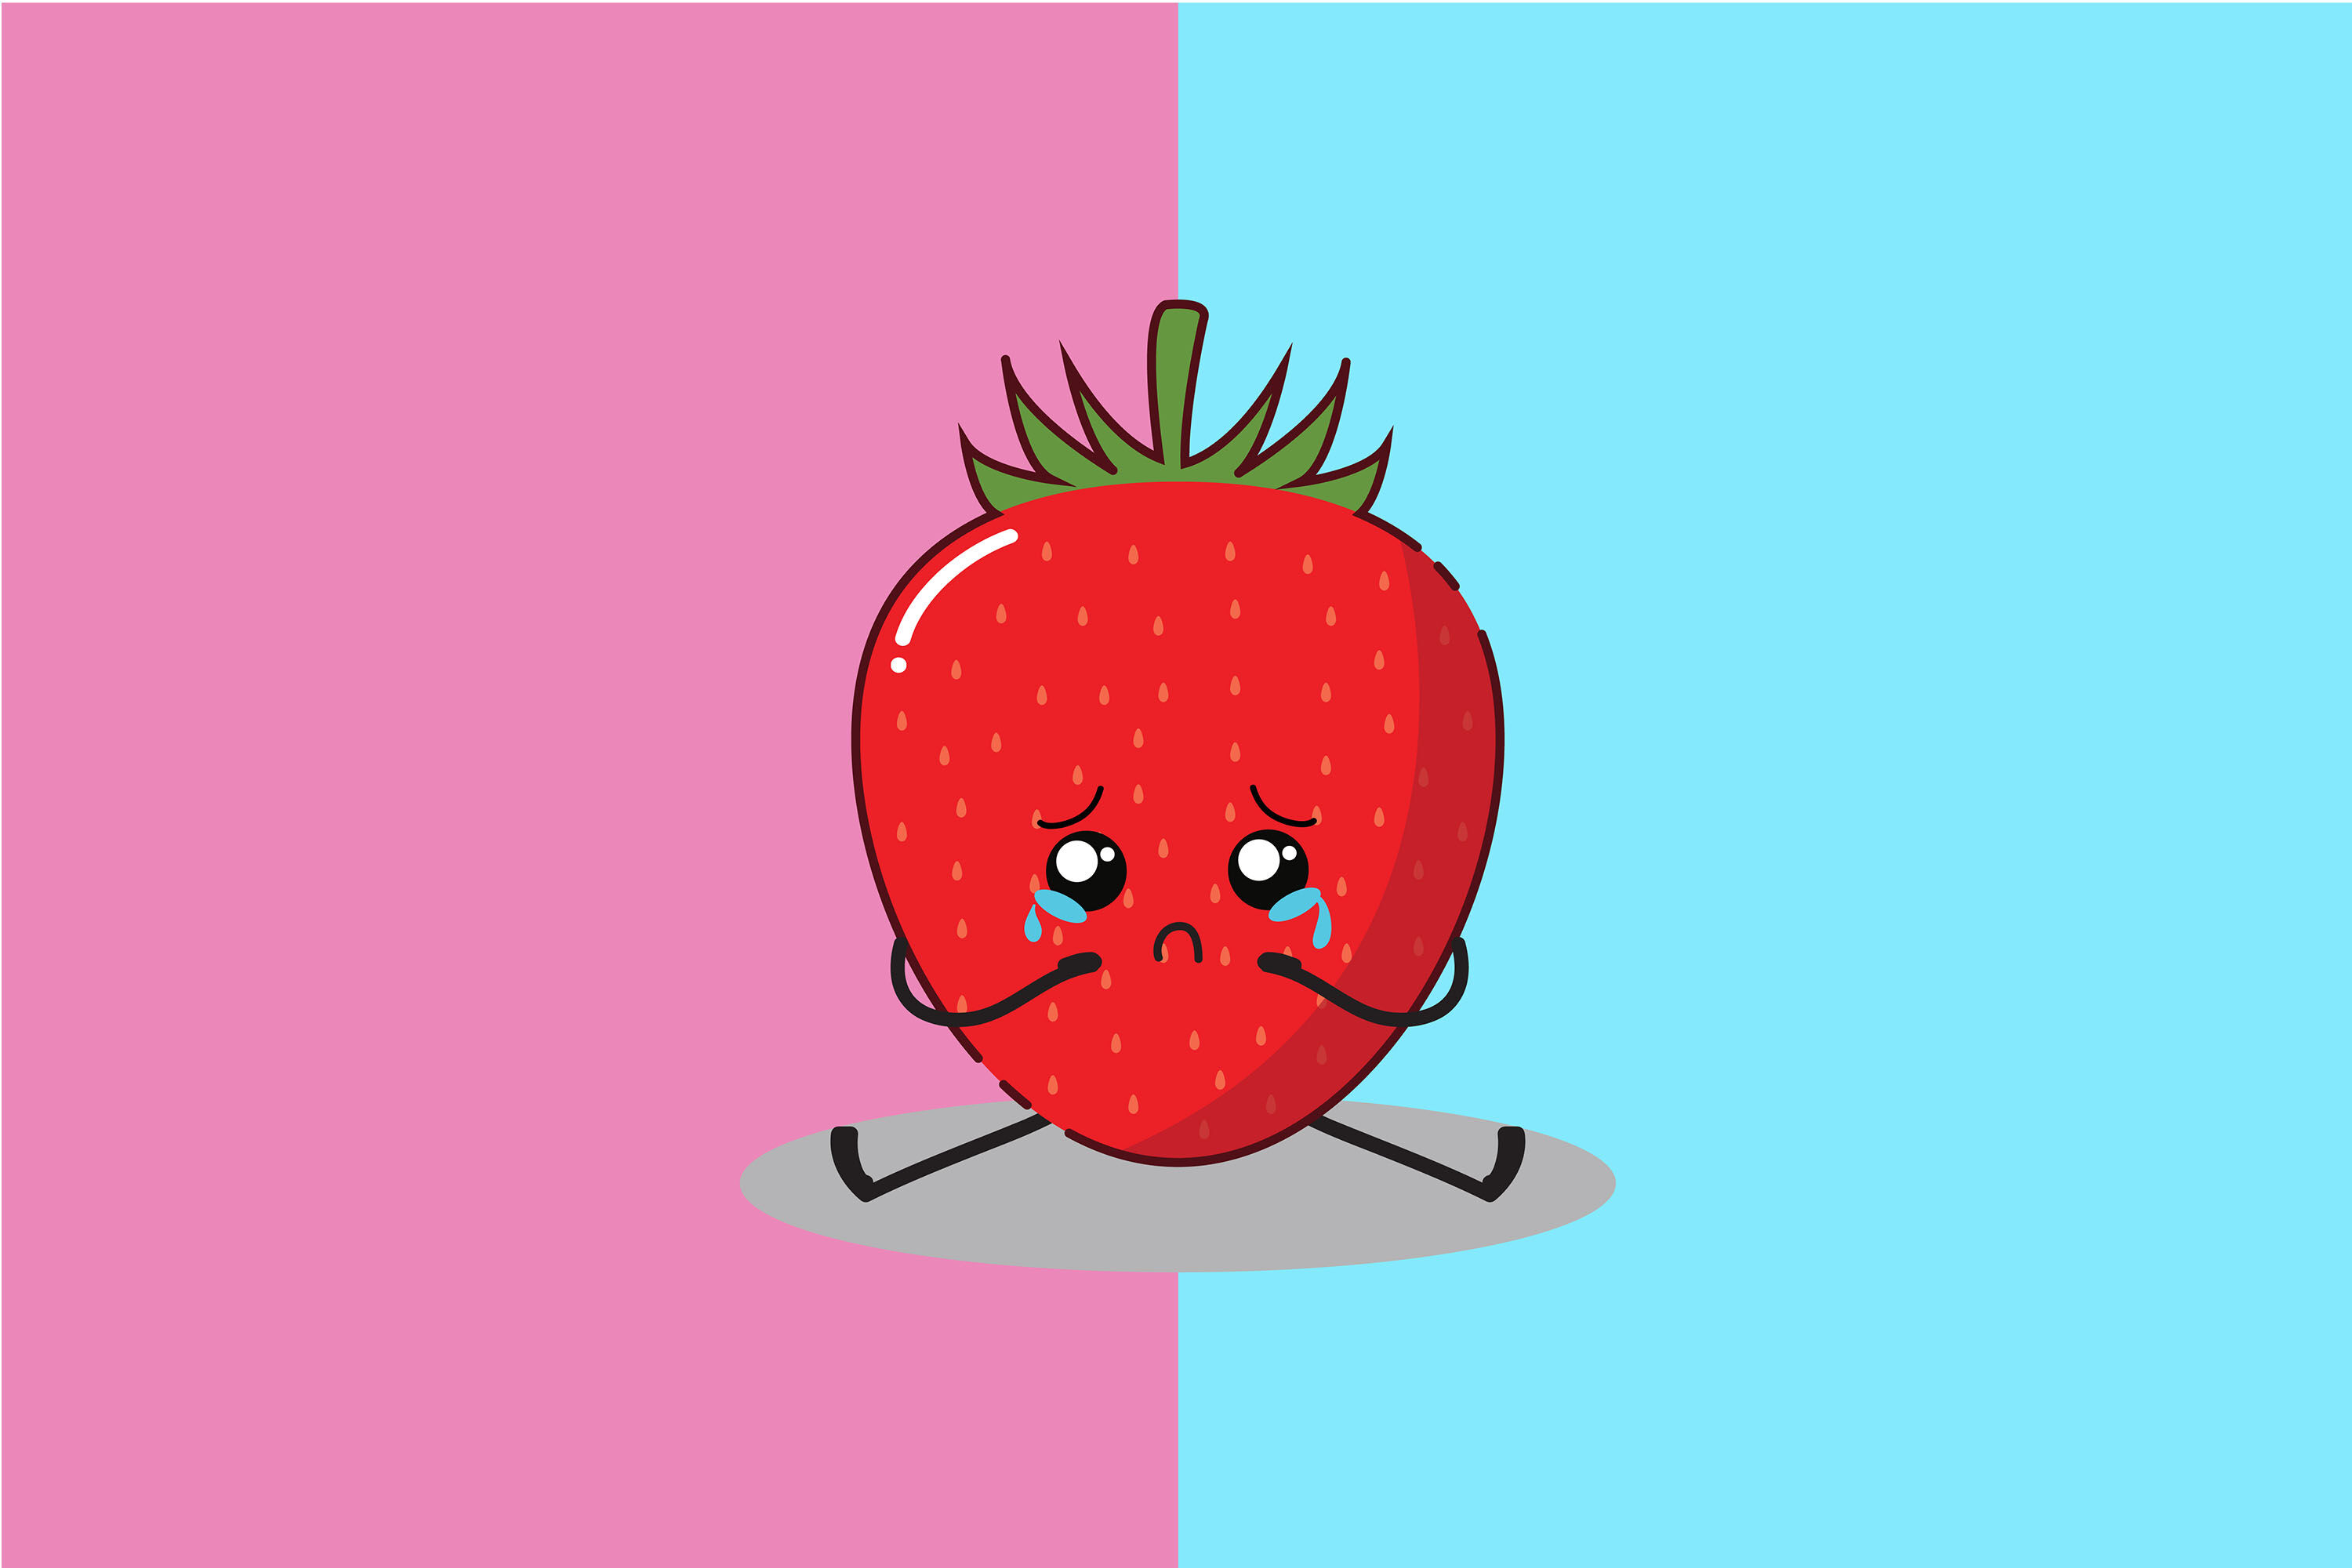 Kawaii Cute Sad Strawberry By Red Sugar Design